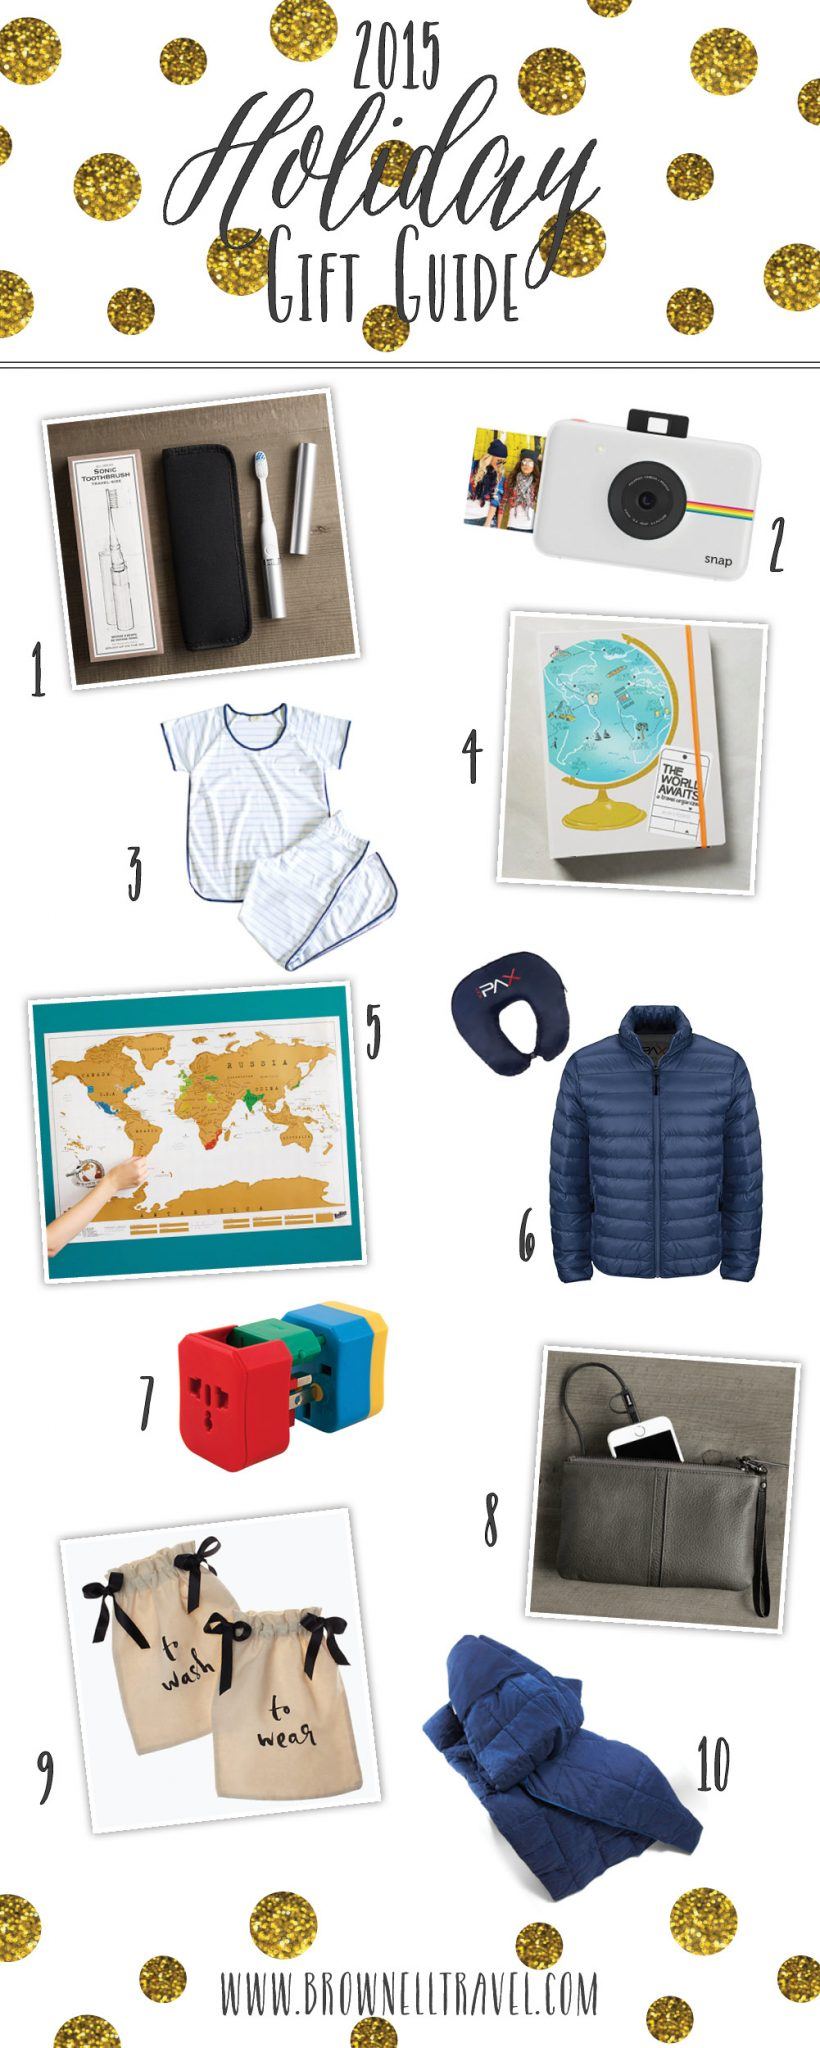 2015-holiday-gift-guide_2